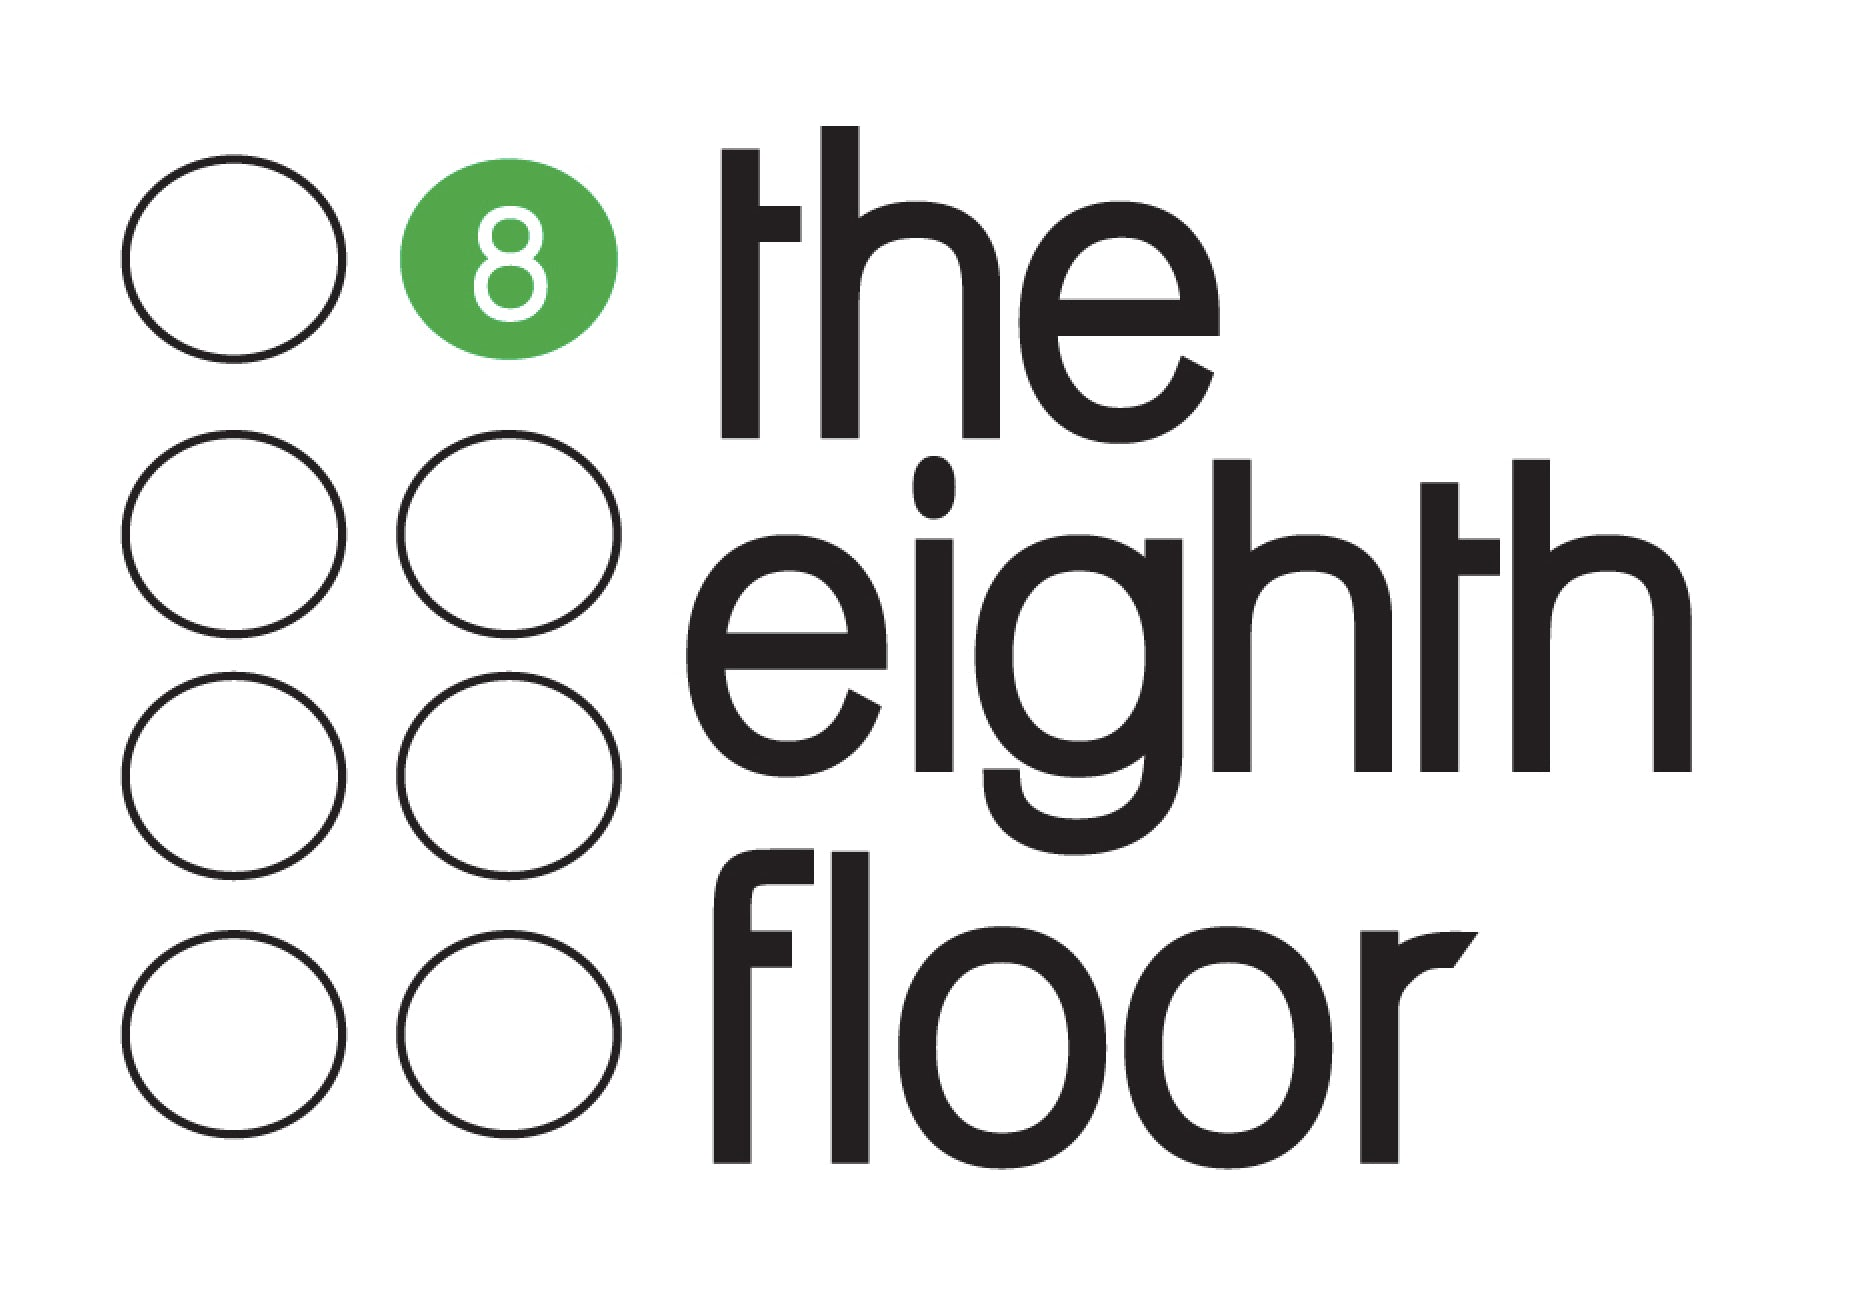 The Eighth Floor company logo